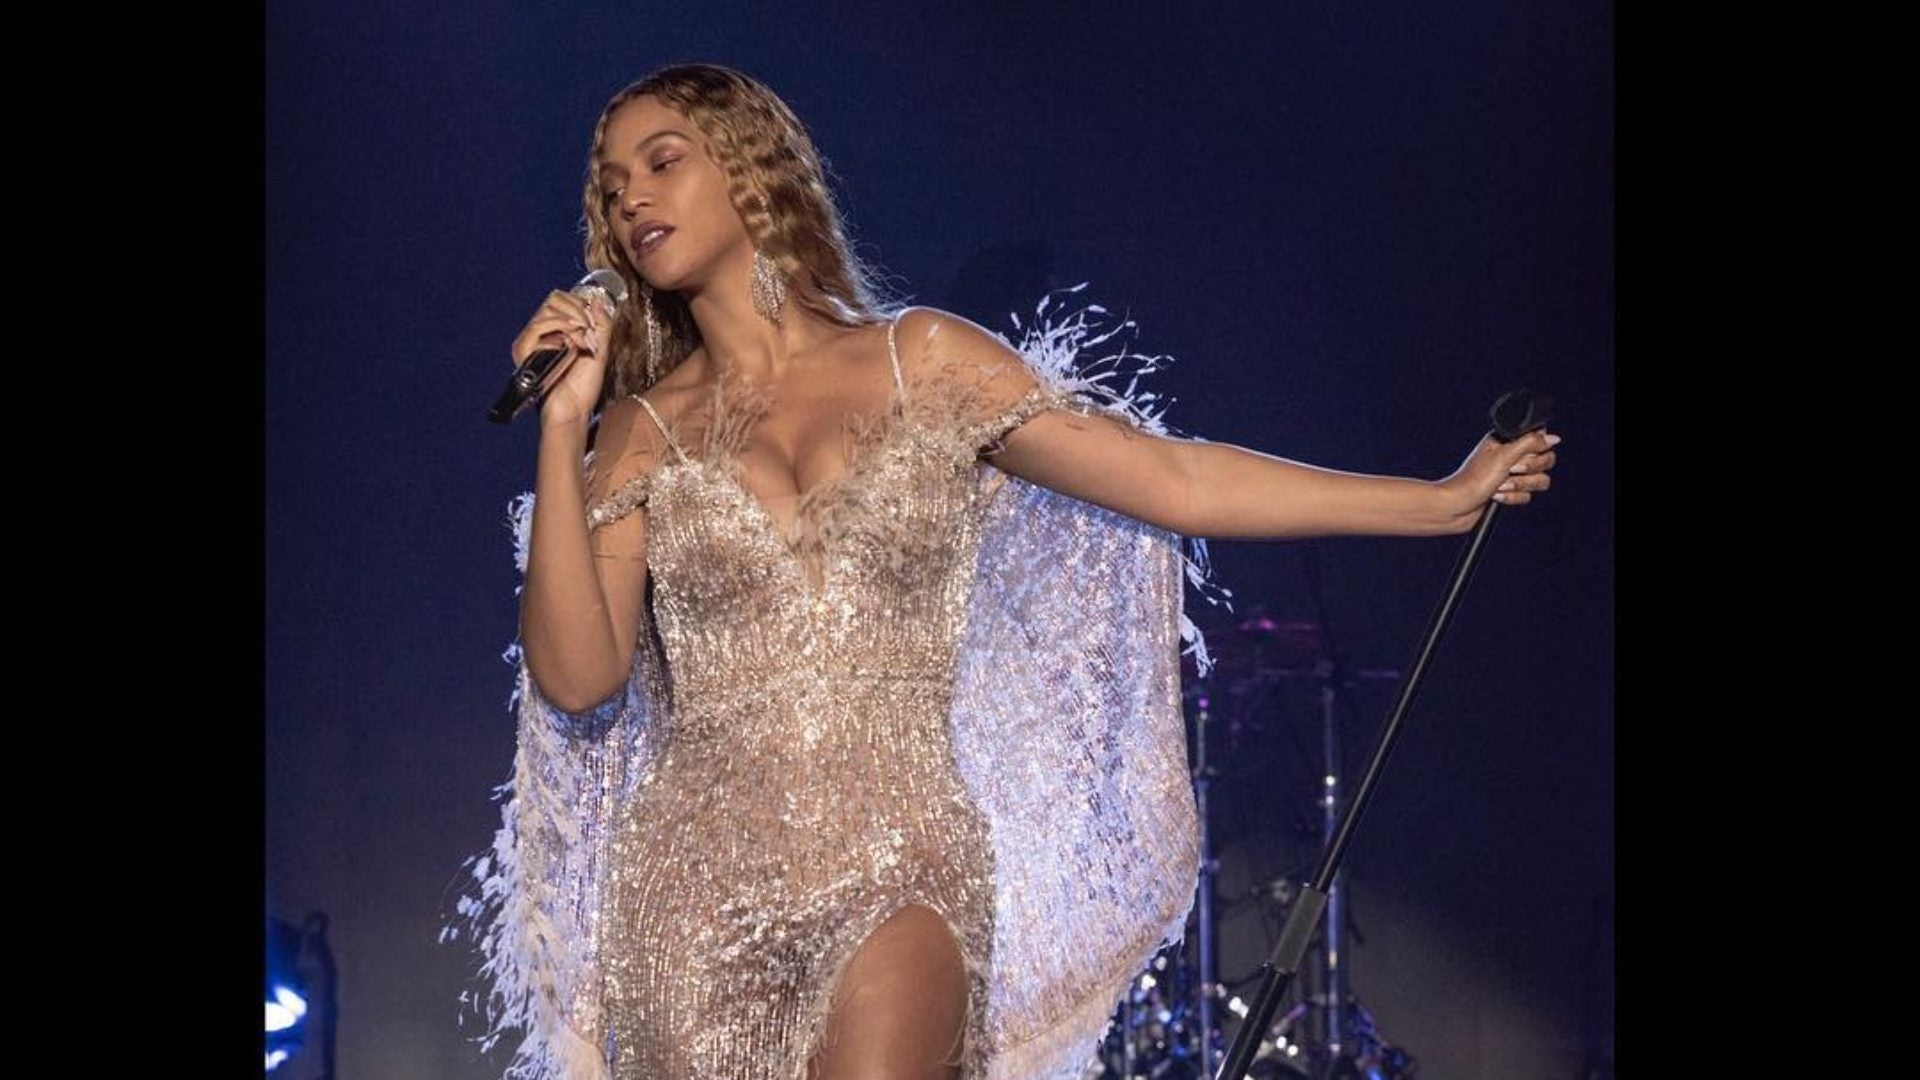 Beyoncé's Vogue Portrait Is Being Acquired By The Smithsonian's National Portrait Gallery